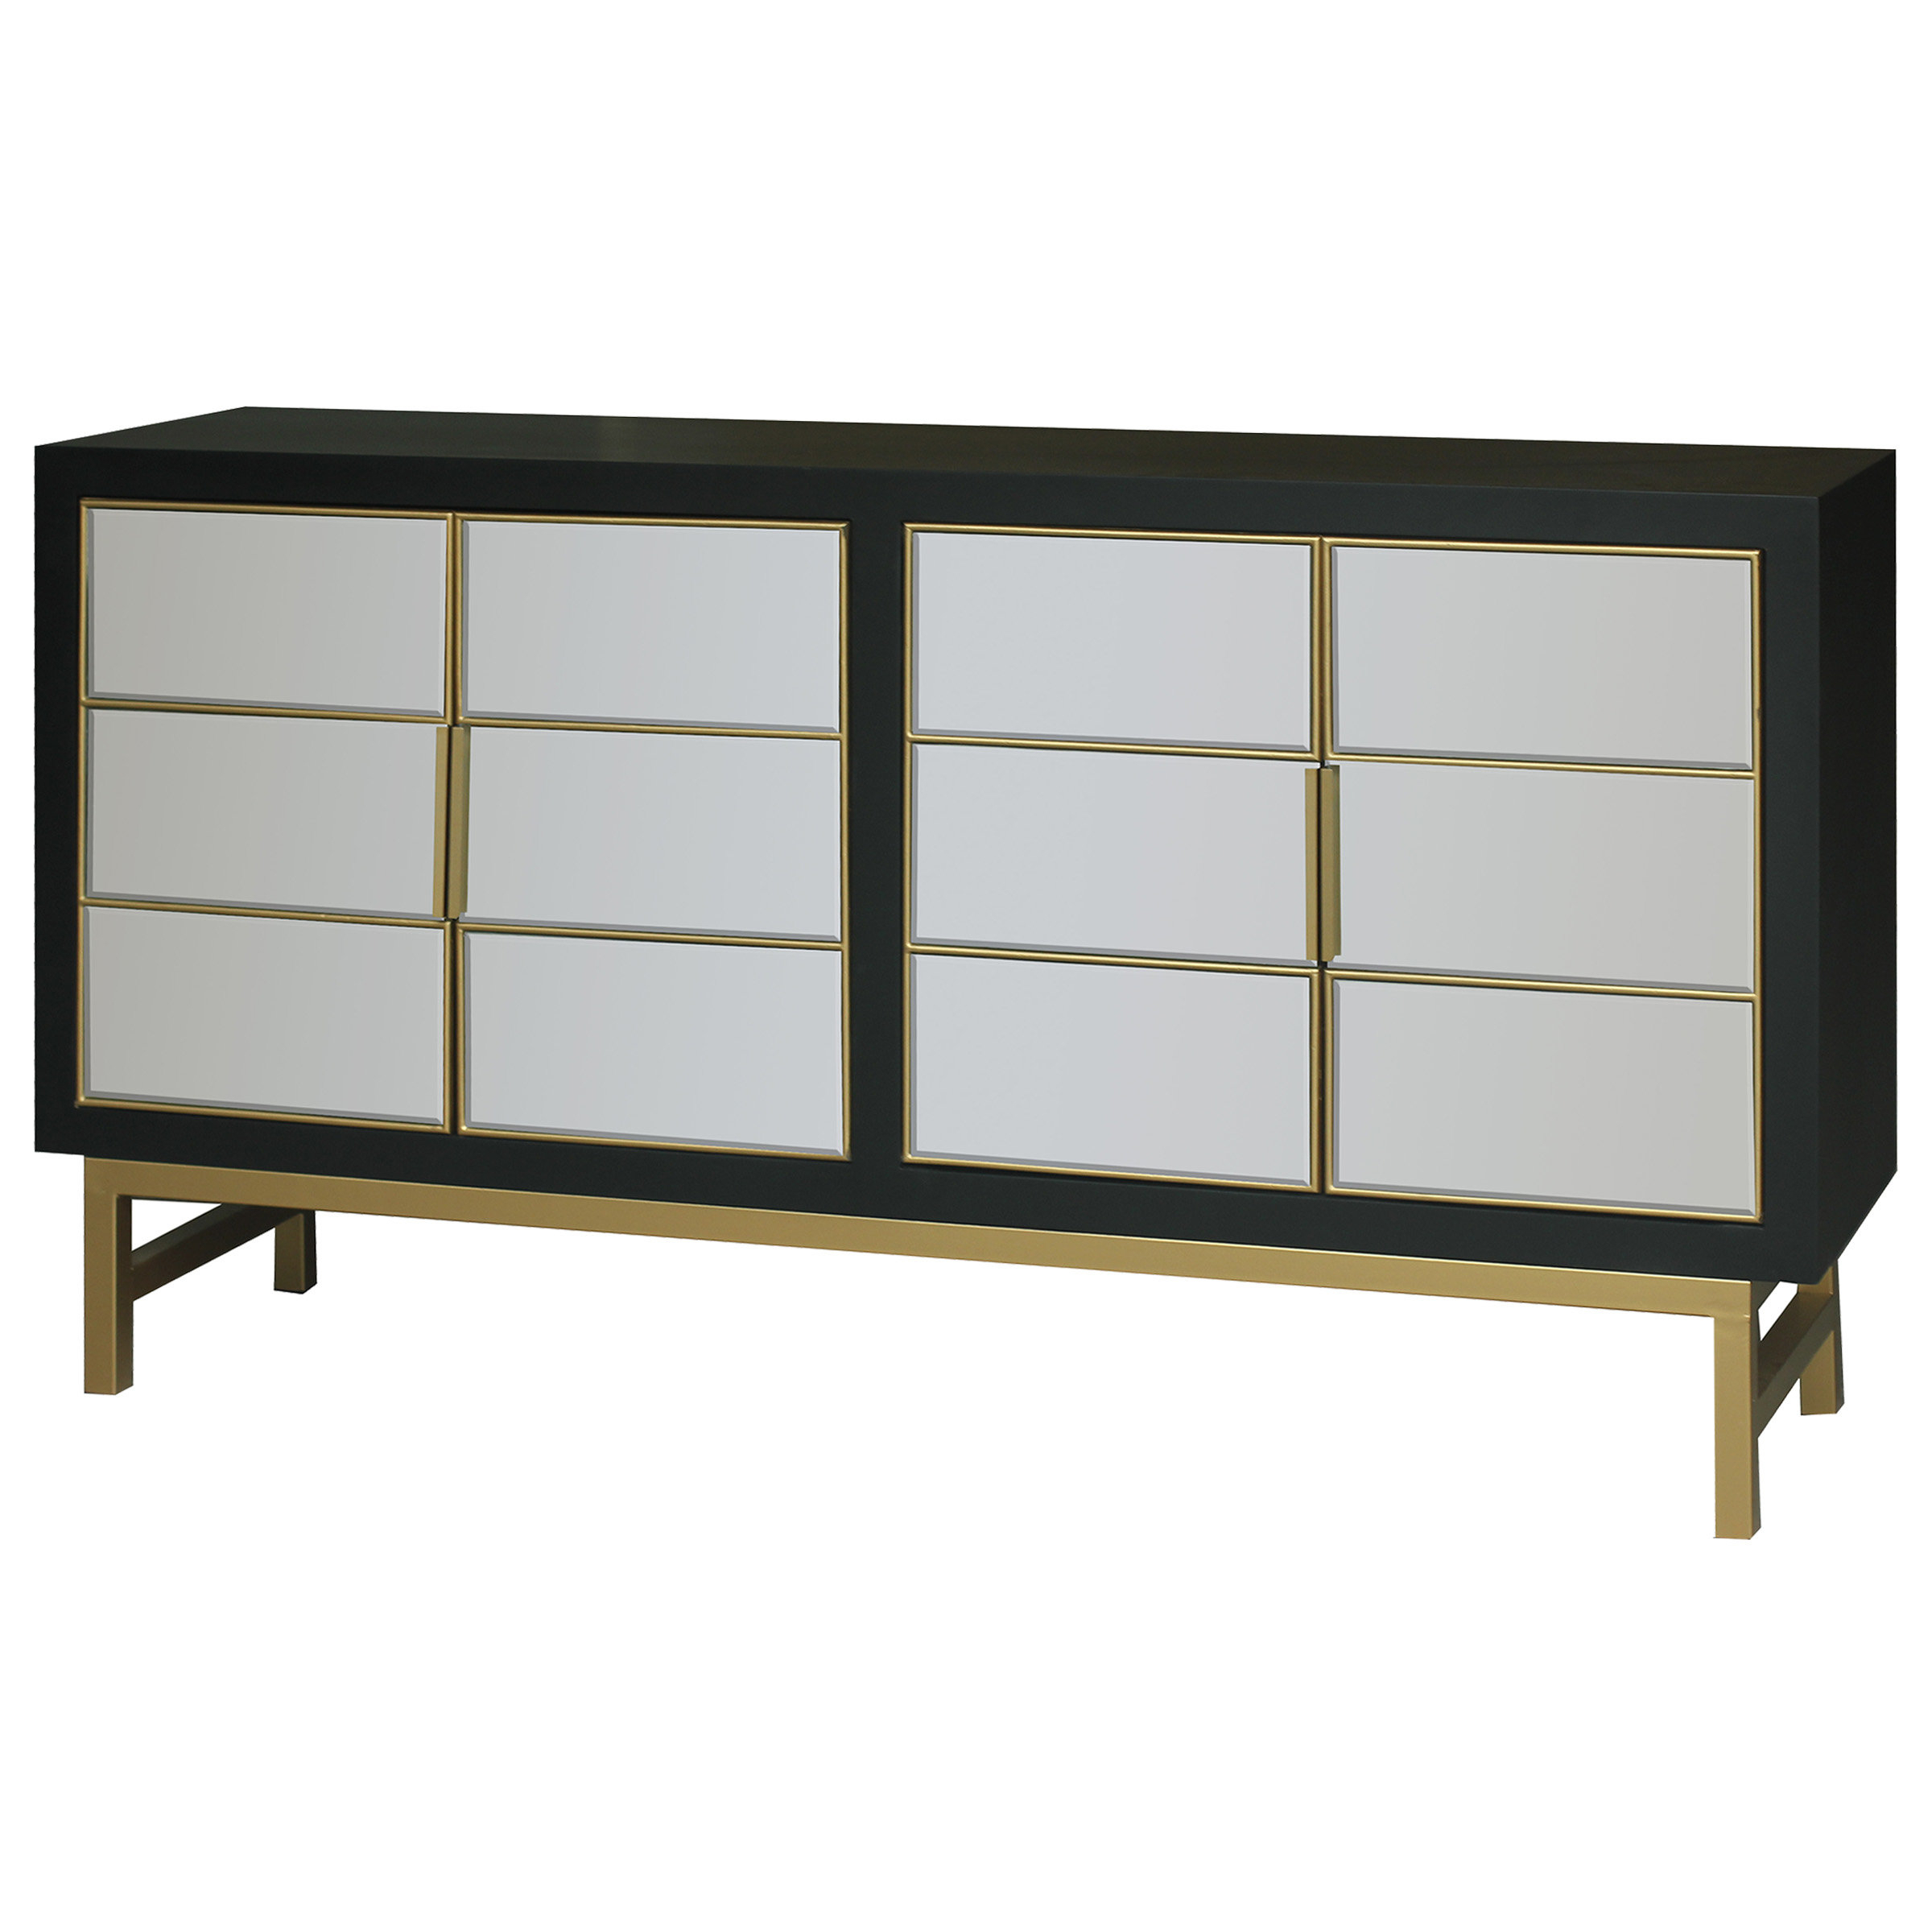 Credenza With Barn Doors | Wayfair With Latest Candace Door Credenzas (View 7 of 20)